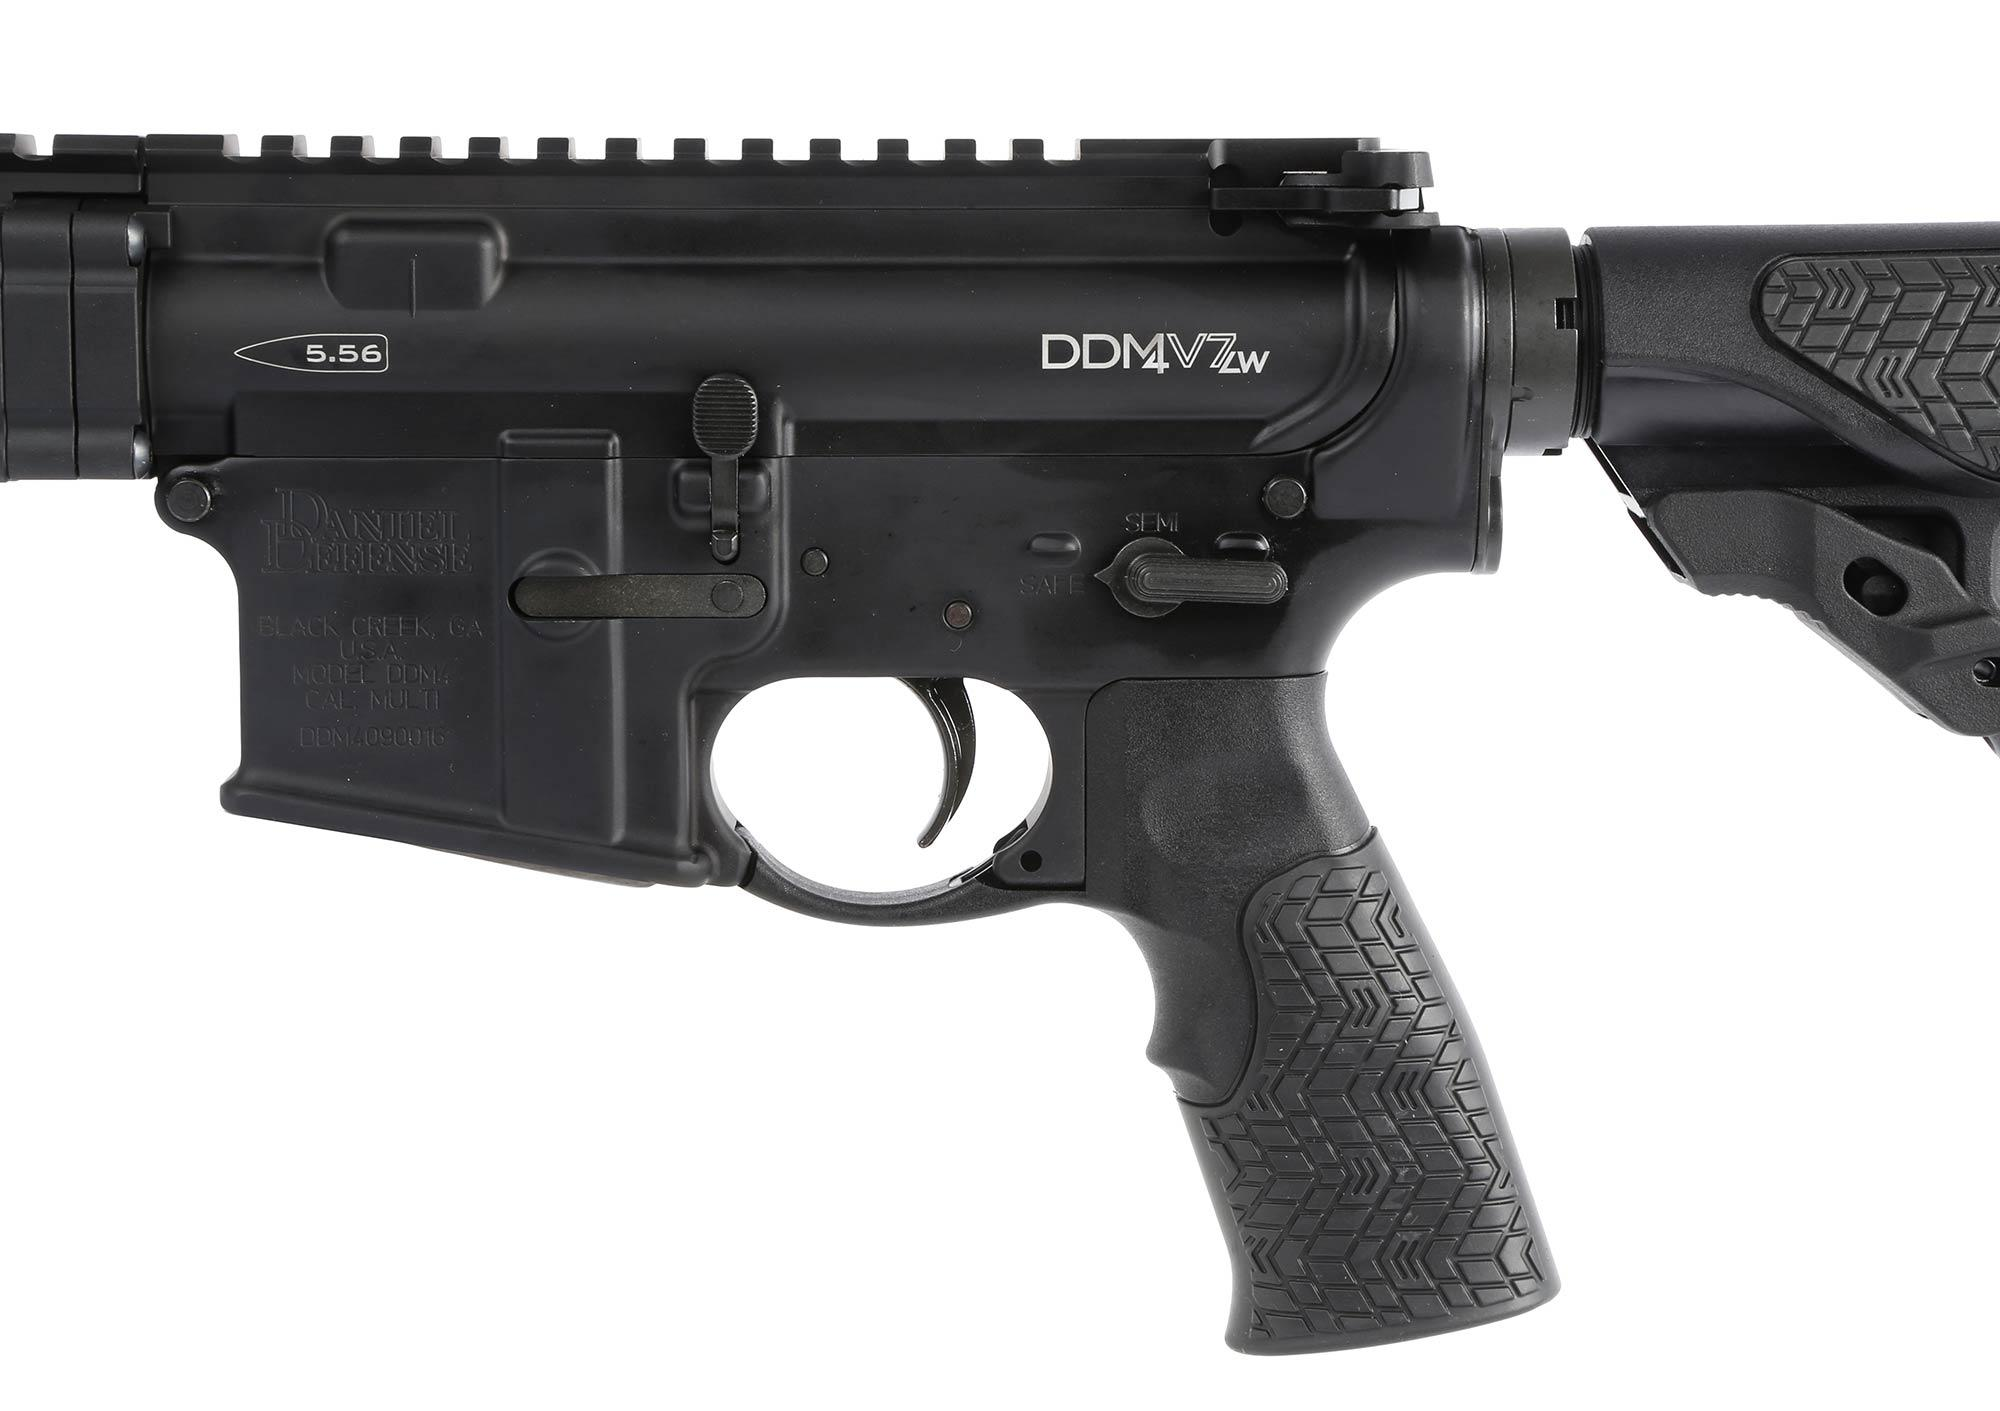 The Daniel Defense DDM4v7 carbine features a rubber overmolded pistol grip